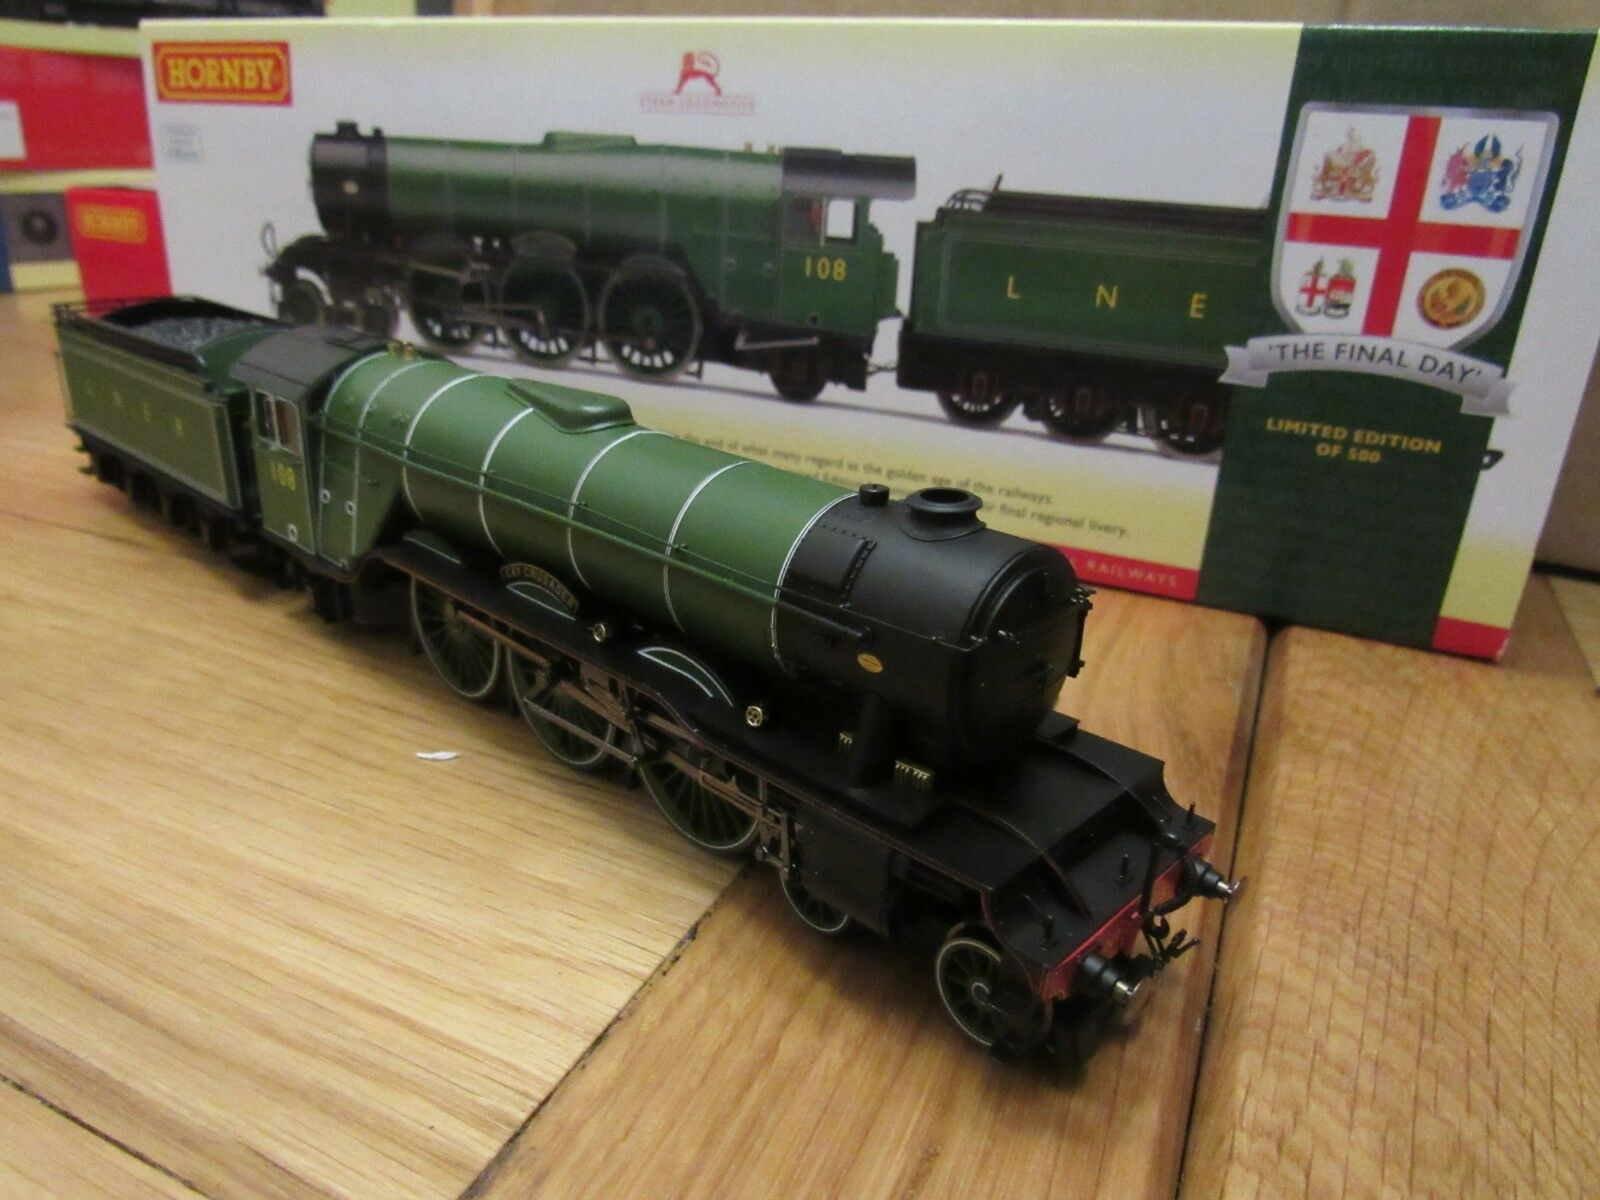 HORNBY  R3518 The Final Day LNER 4-6-2 A3 Class gay crusader l edition dcc ready